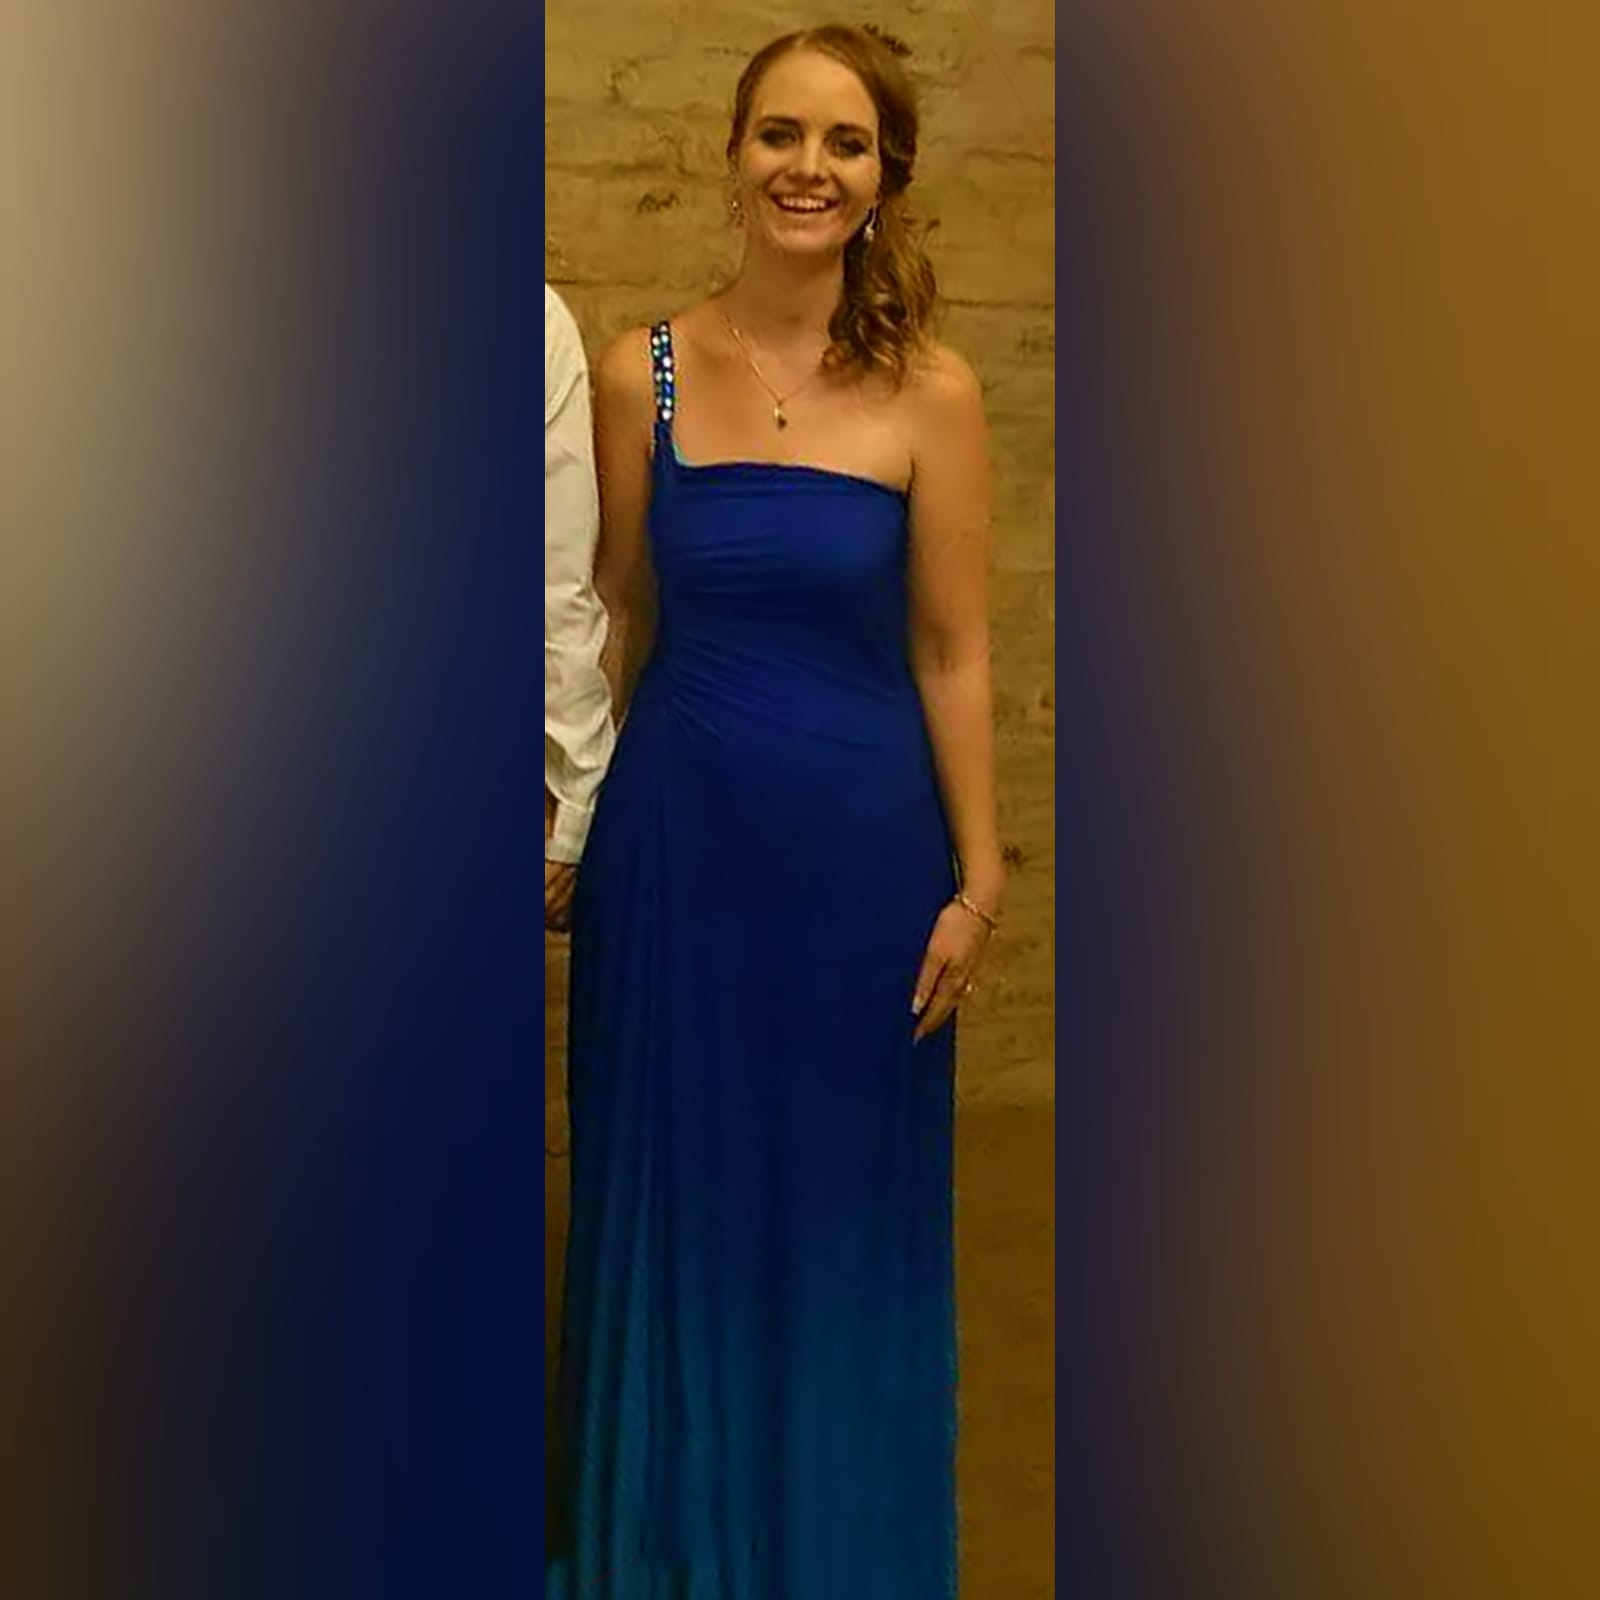 Blue ombre maid of honour dress 2 blue ombre maid of honour dress with a single beaded/bling shoulder design.